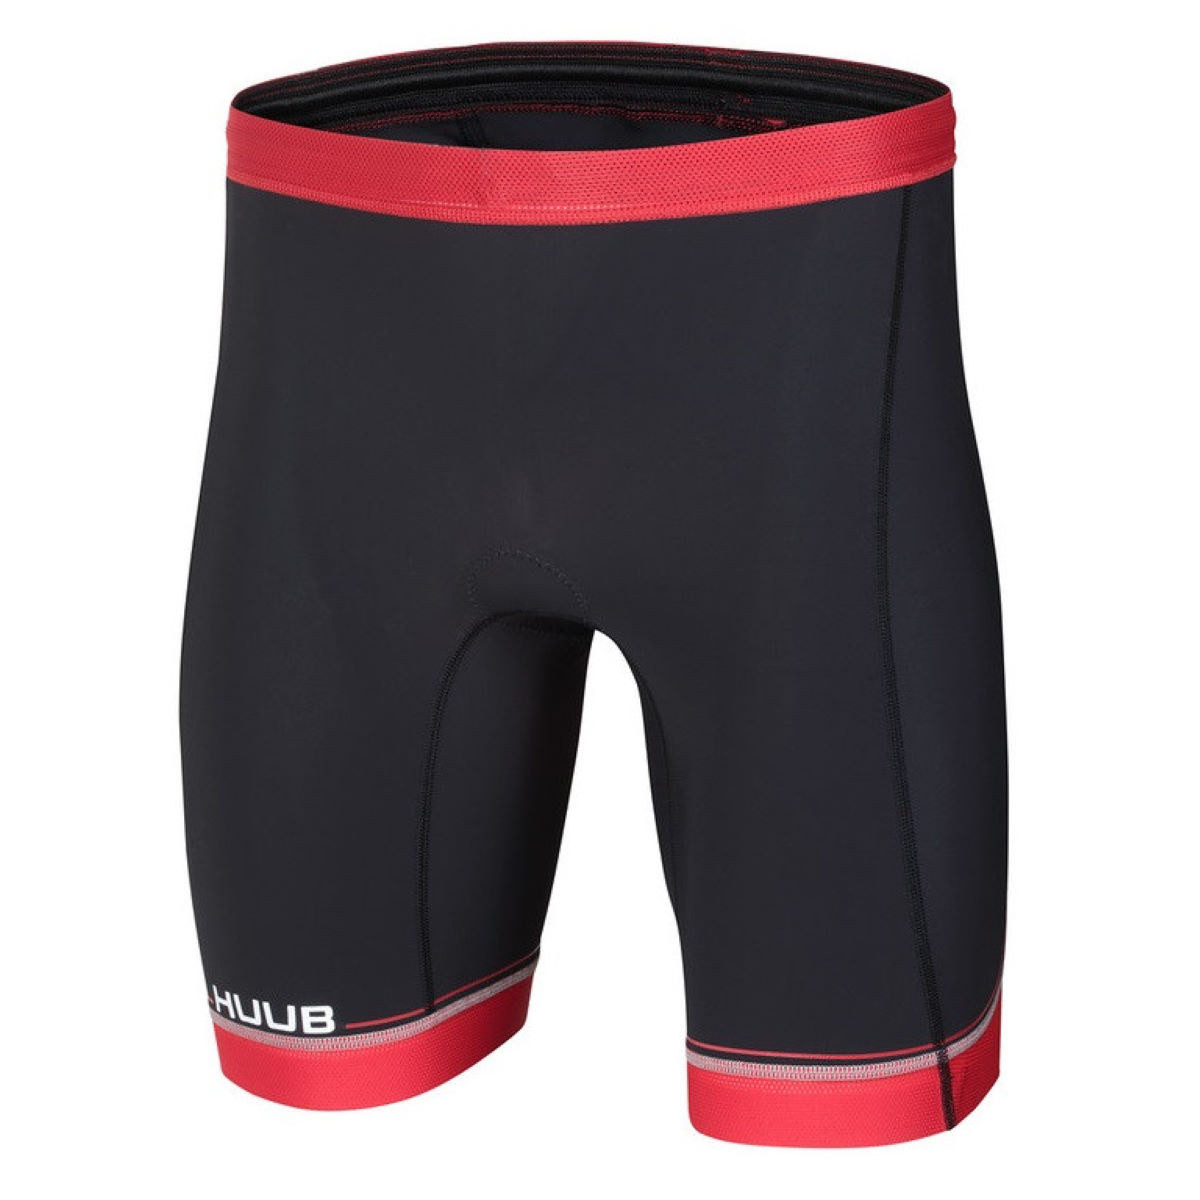 Cuissard court HUUB Core Tri - XL Noir/Rouge Shorts de triathlon